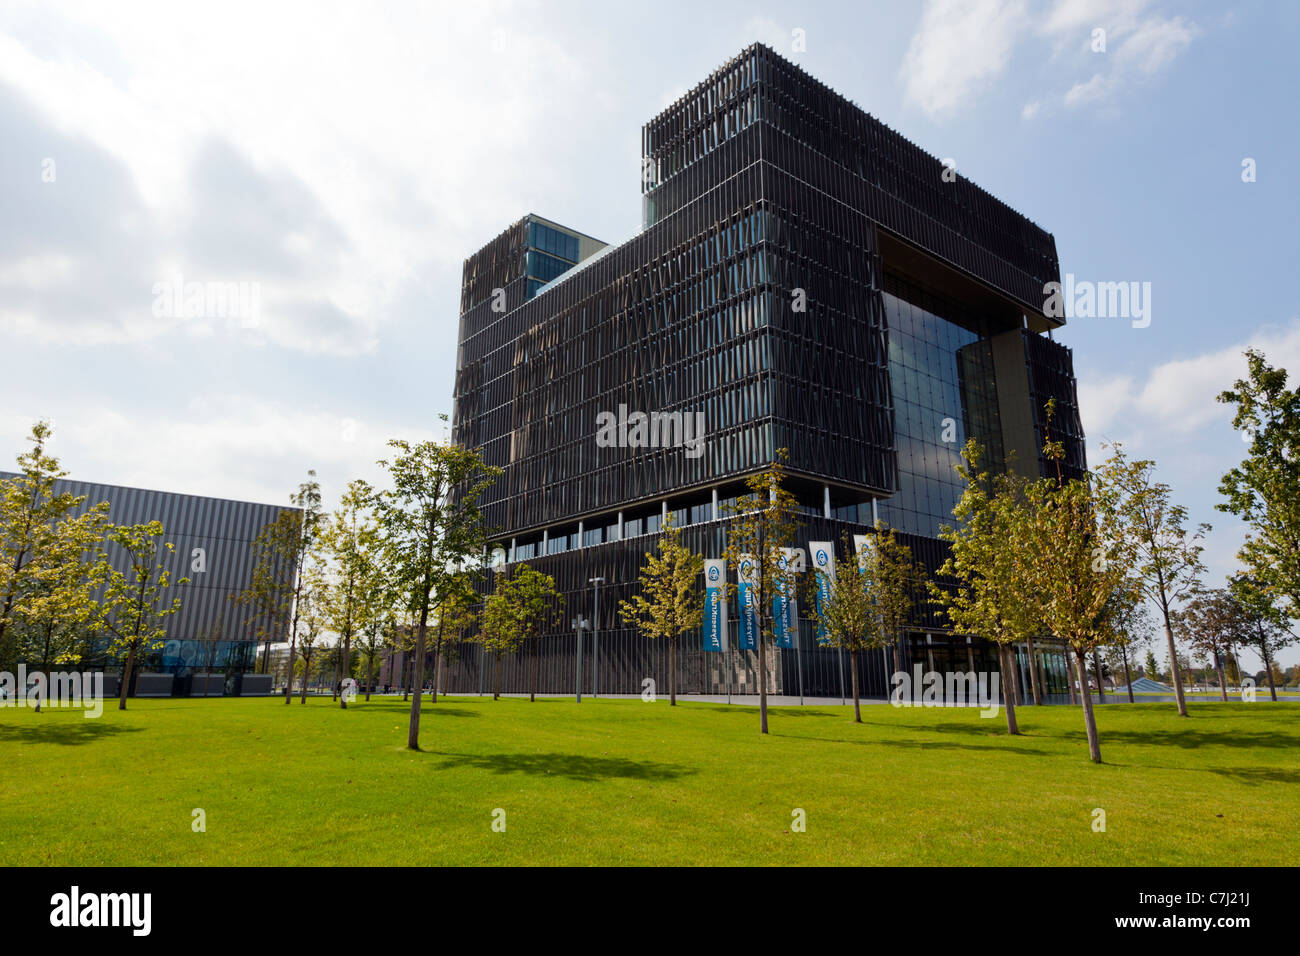 new ThyssenKrupp headquarters building at Essen, Germany - Stock Image